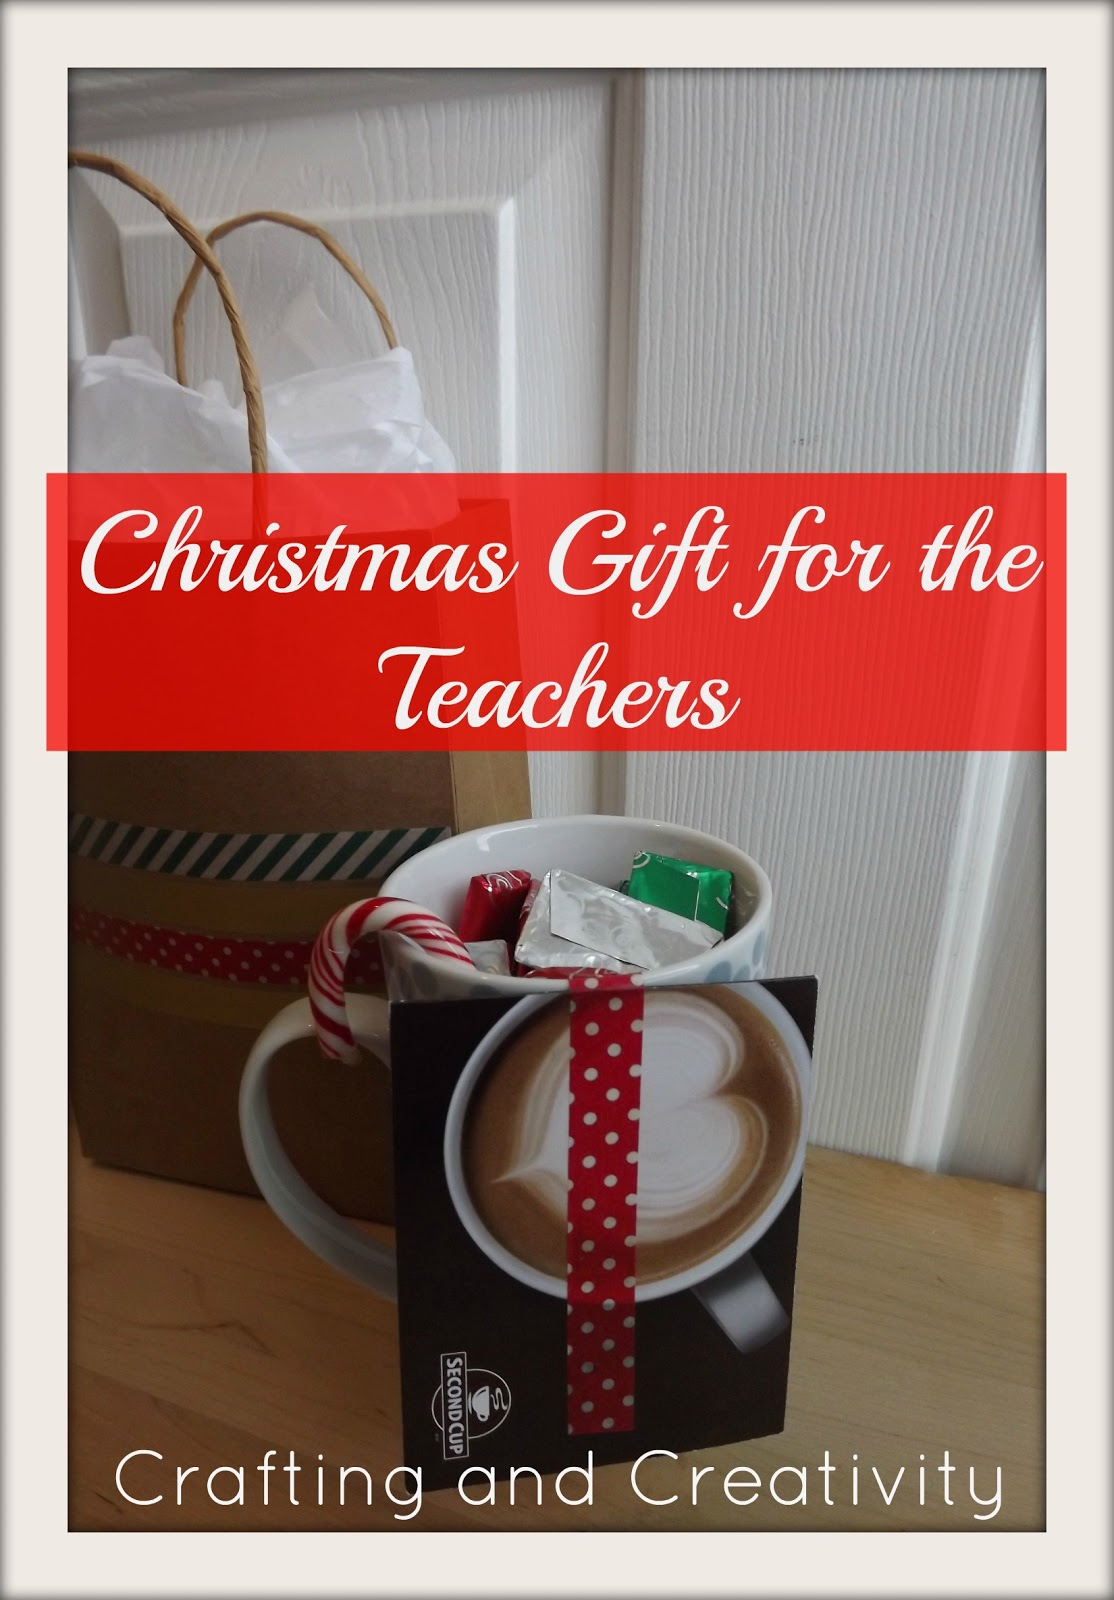 Crafting and Creativity: Christmas Gift for the Teachers